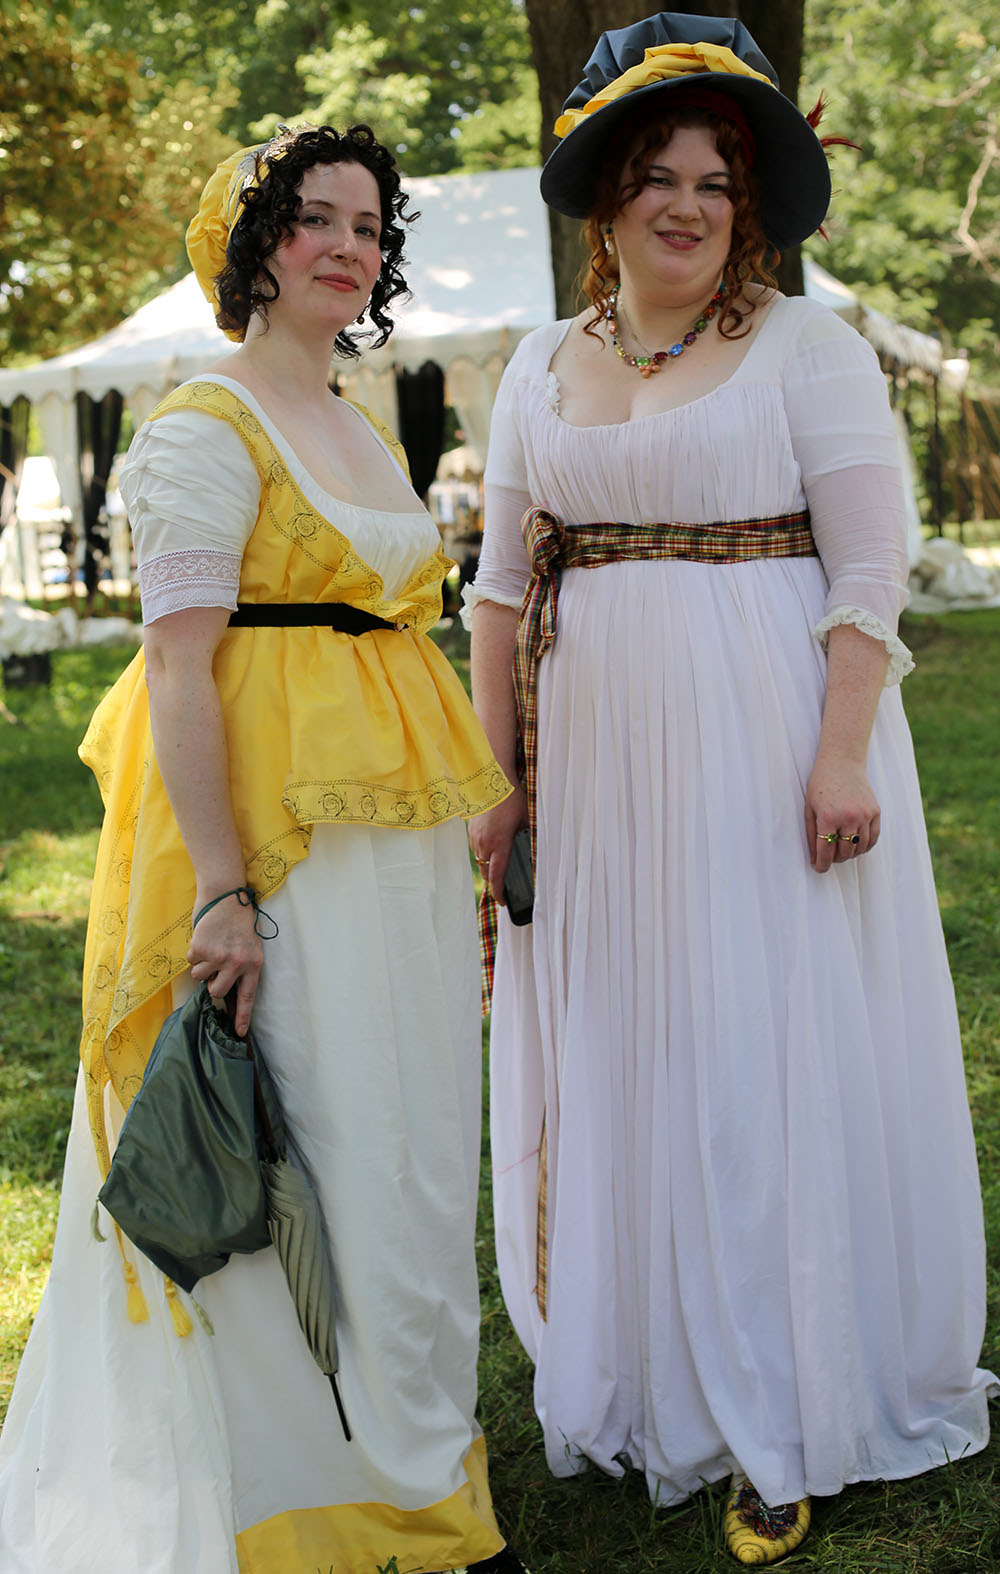 JAF+Yellow+and+White+Ladies - Jane Austen Pageant at Locust Grove 2018